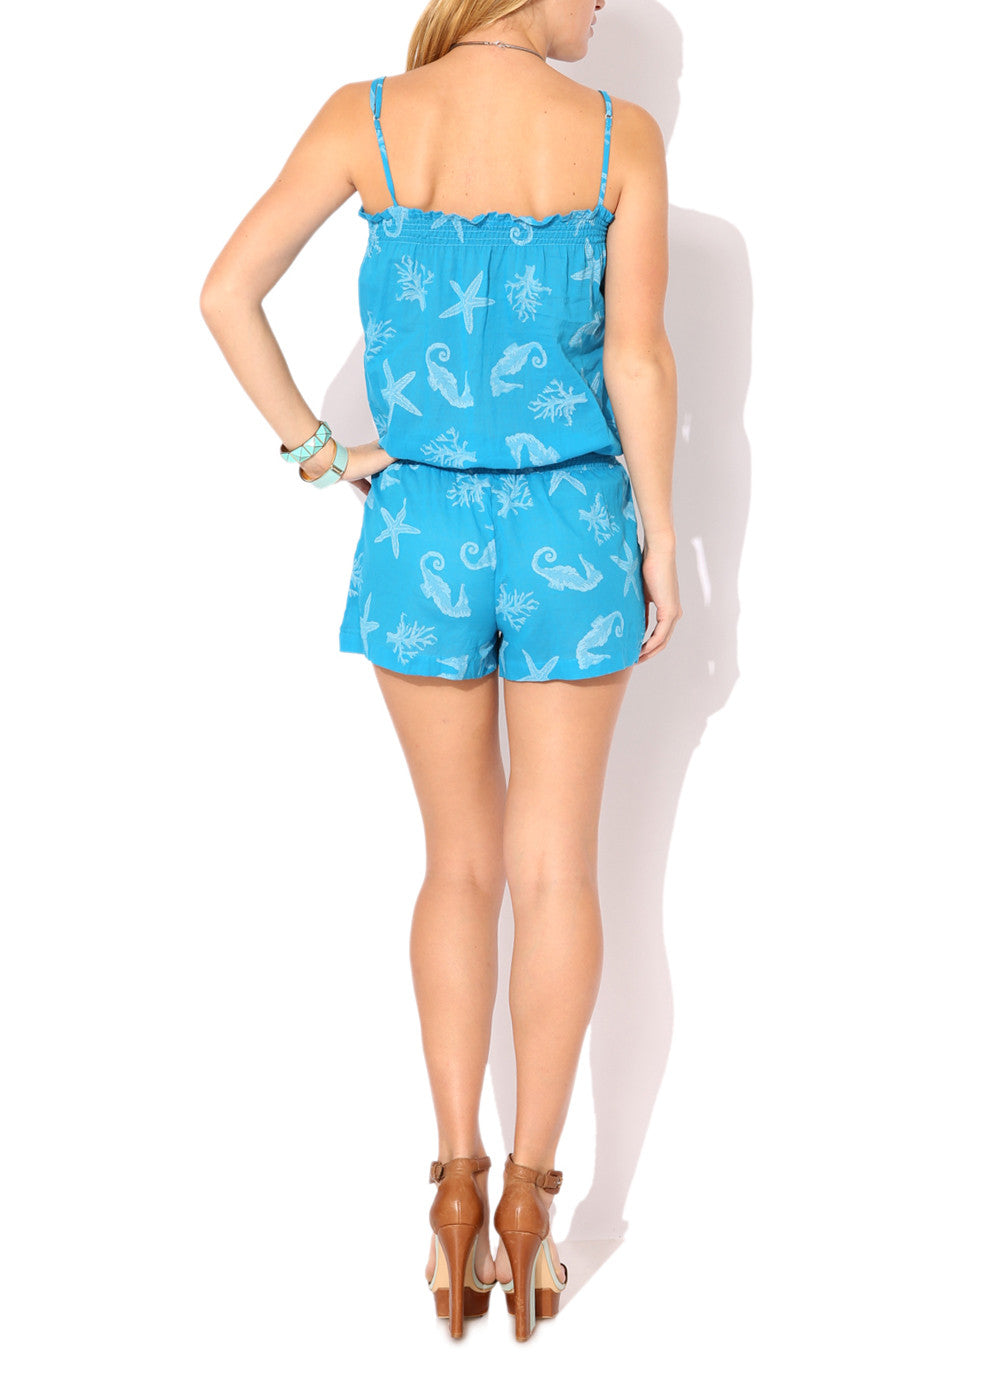 Sealife Romper KV285